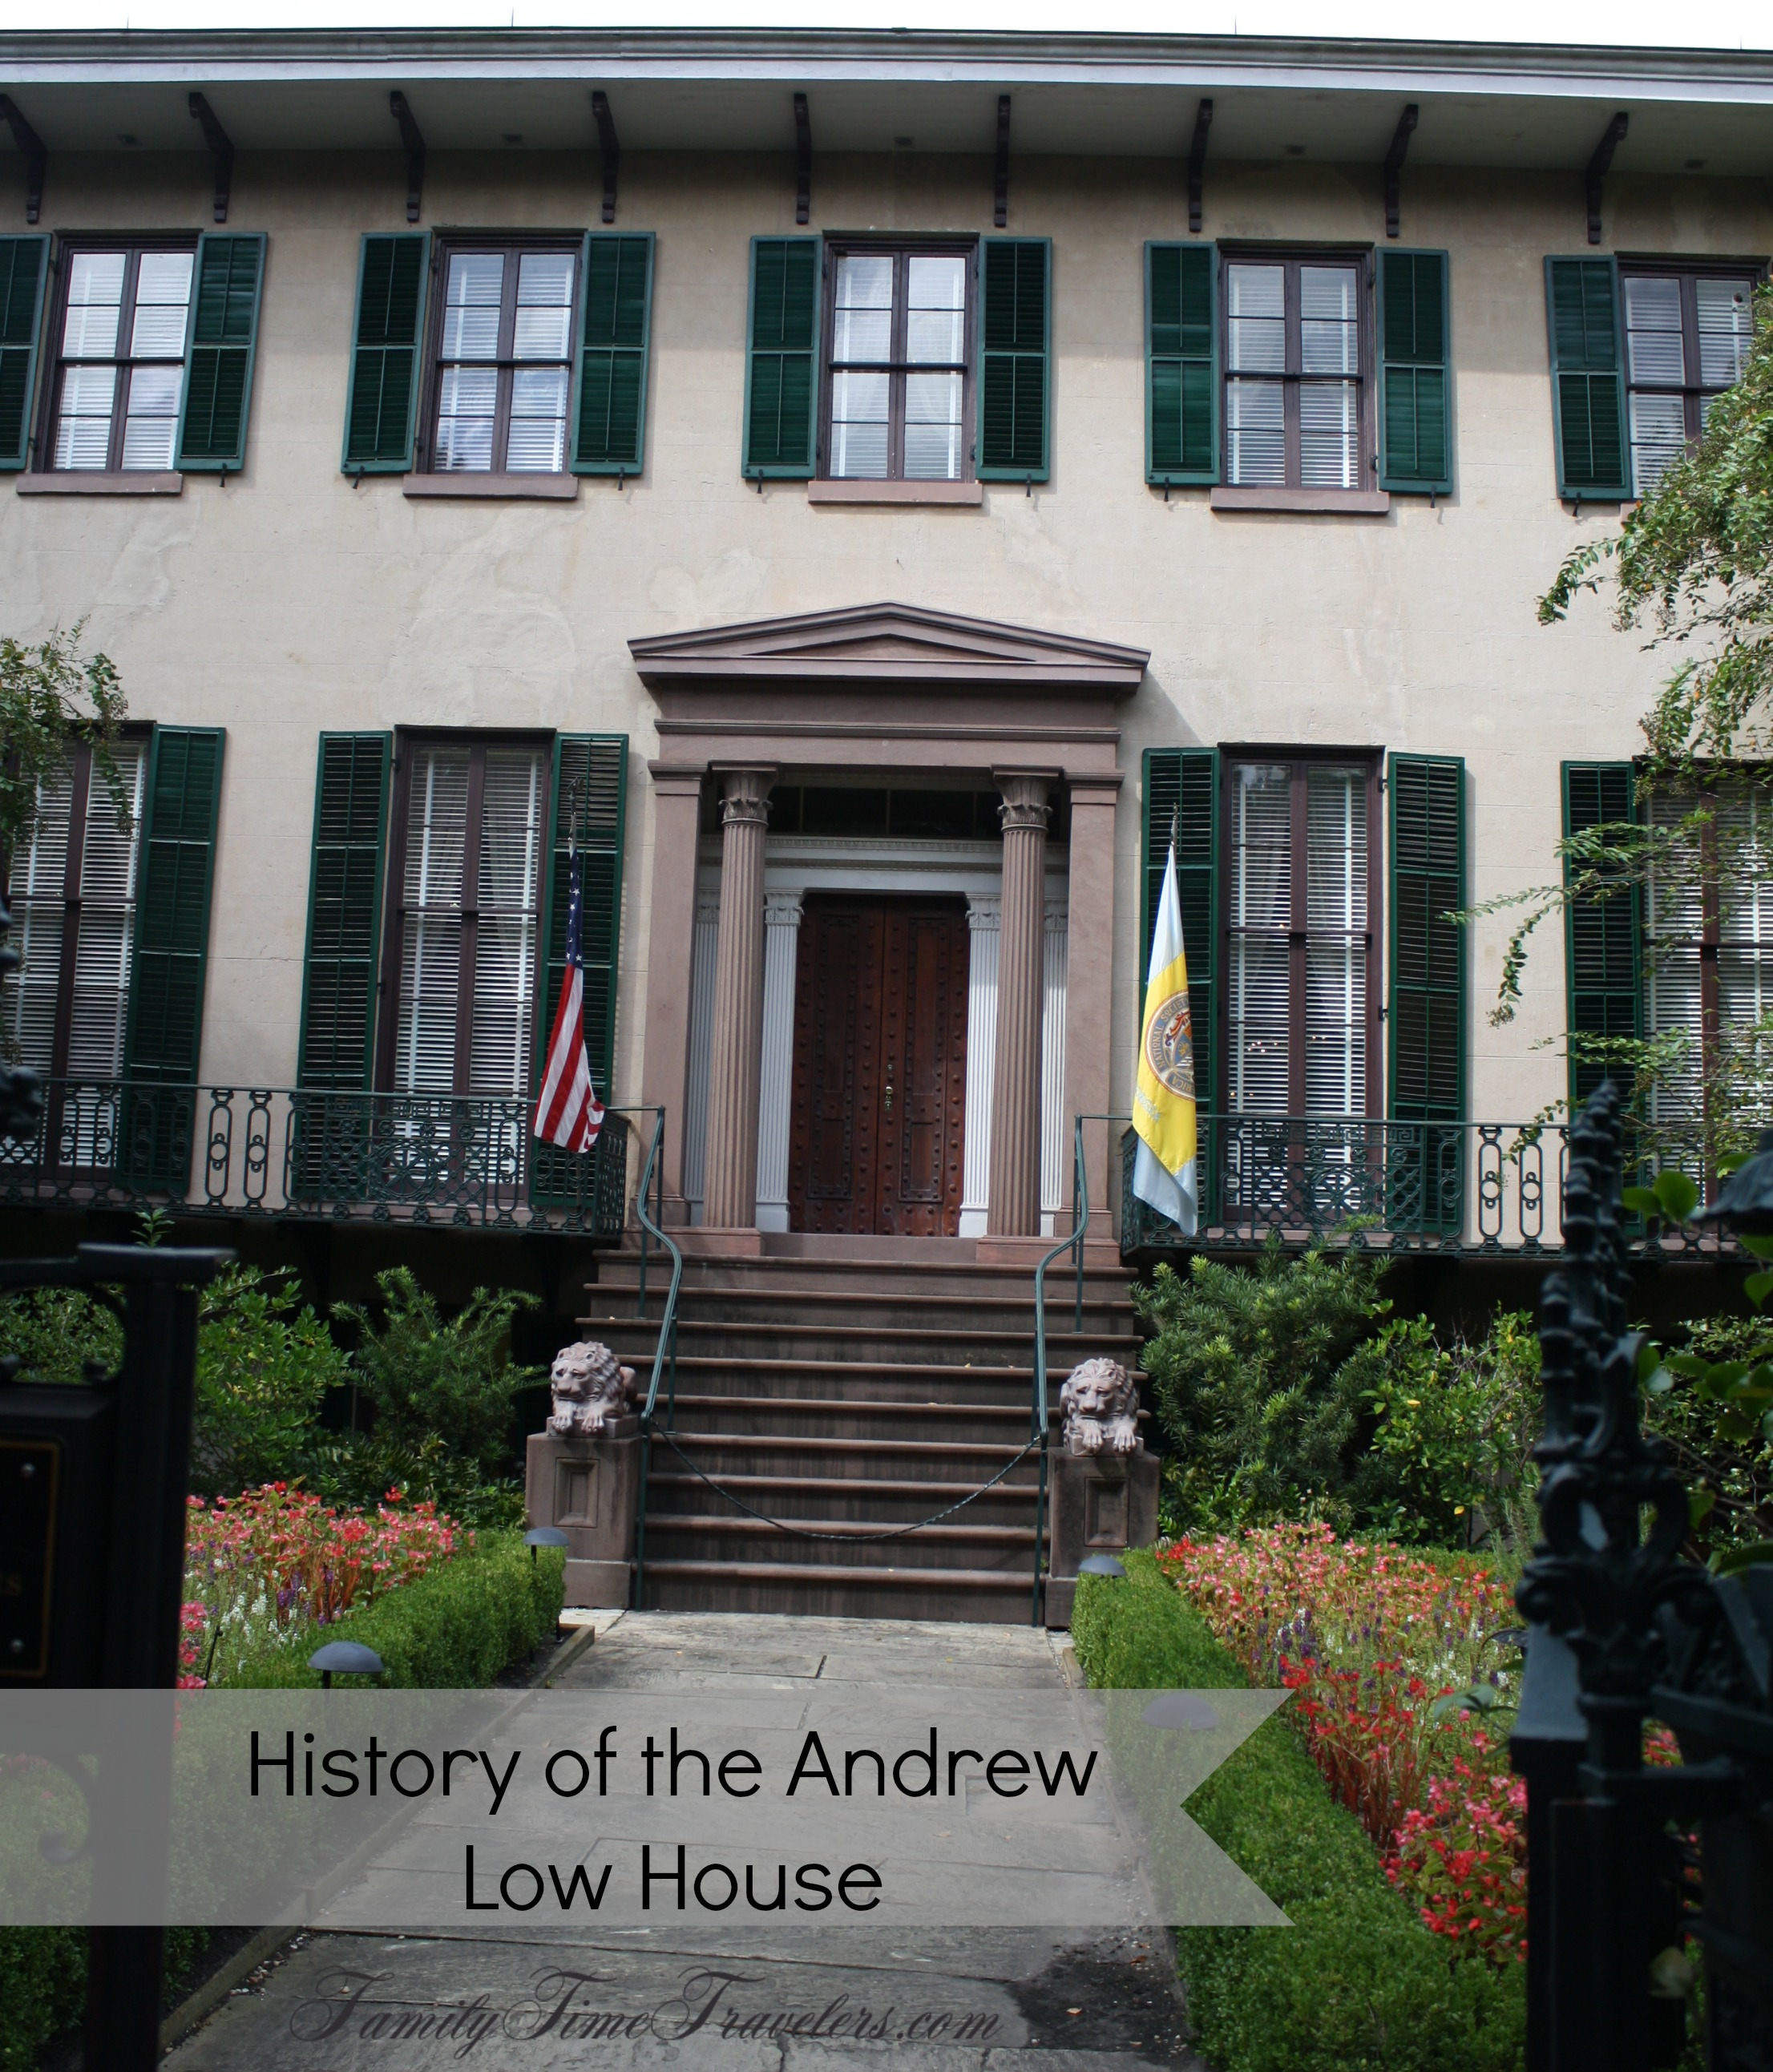 History of the Andrew Low House - Family Time Travelers